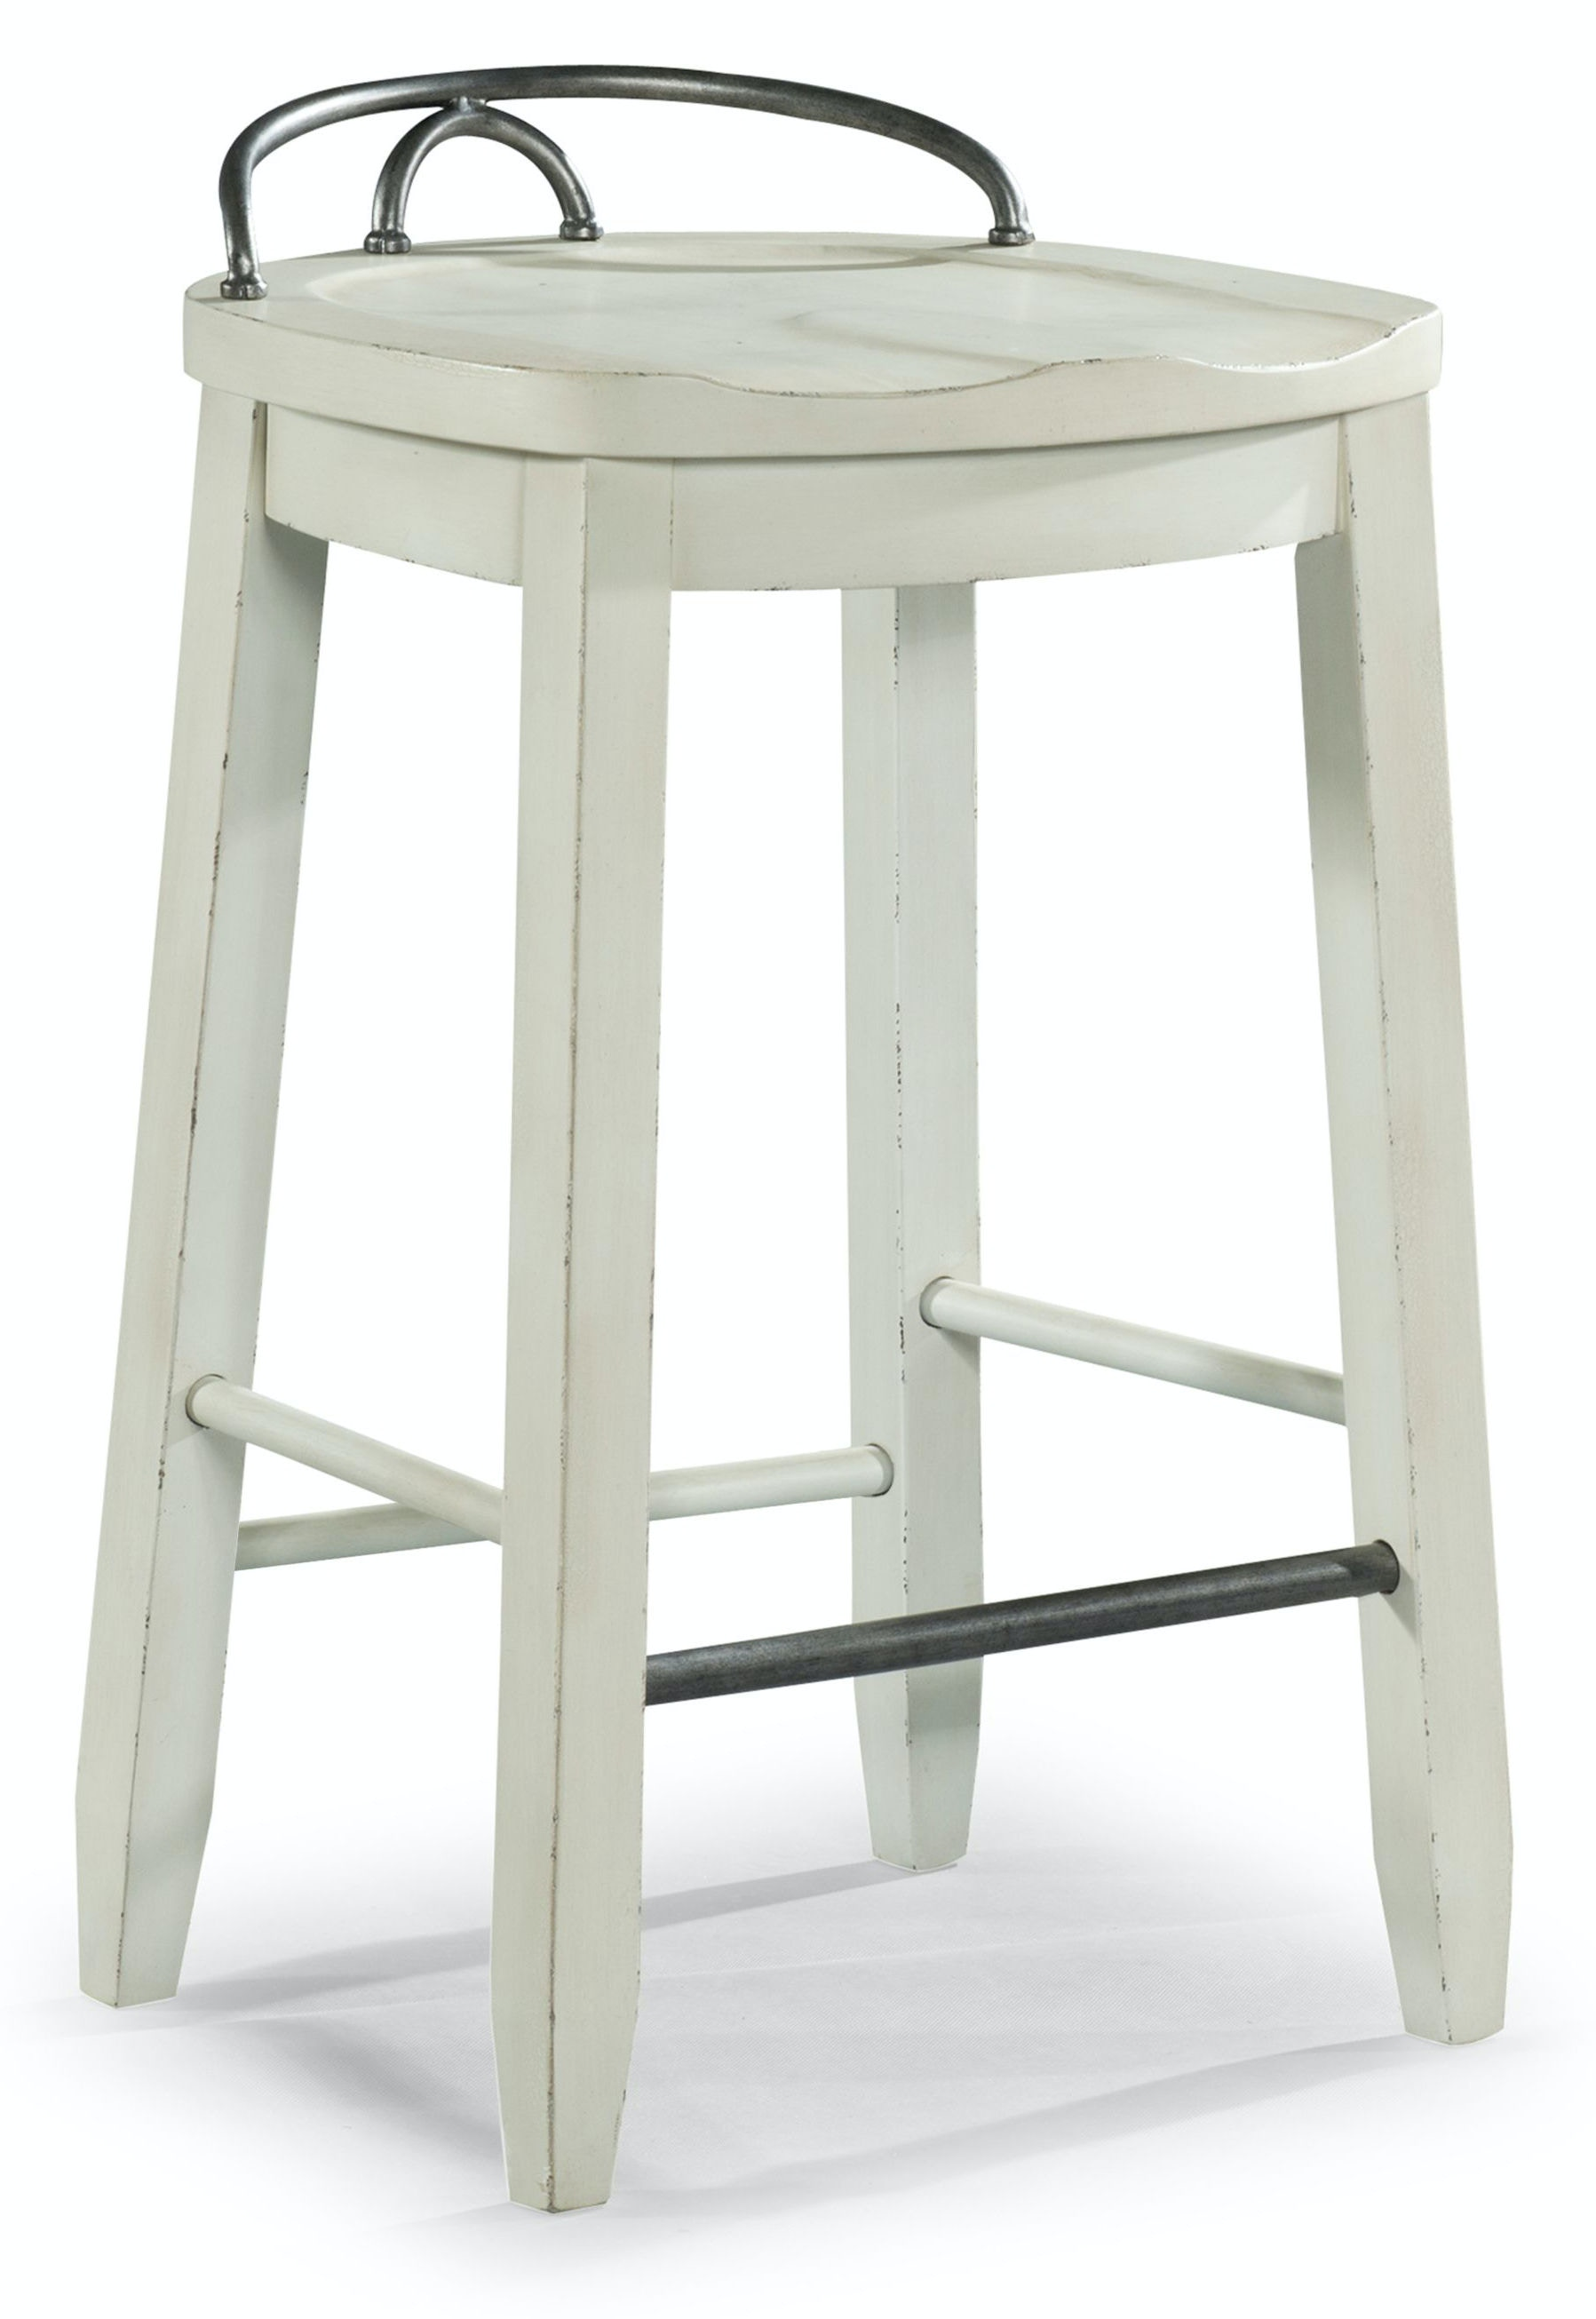 Attractive Trisha Yearwood   Cowboy Stool   CREAM